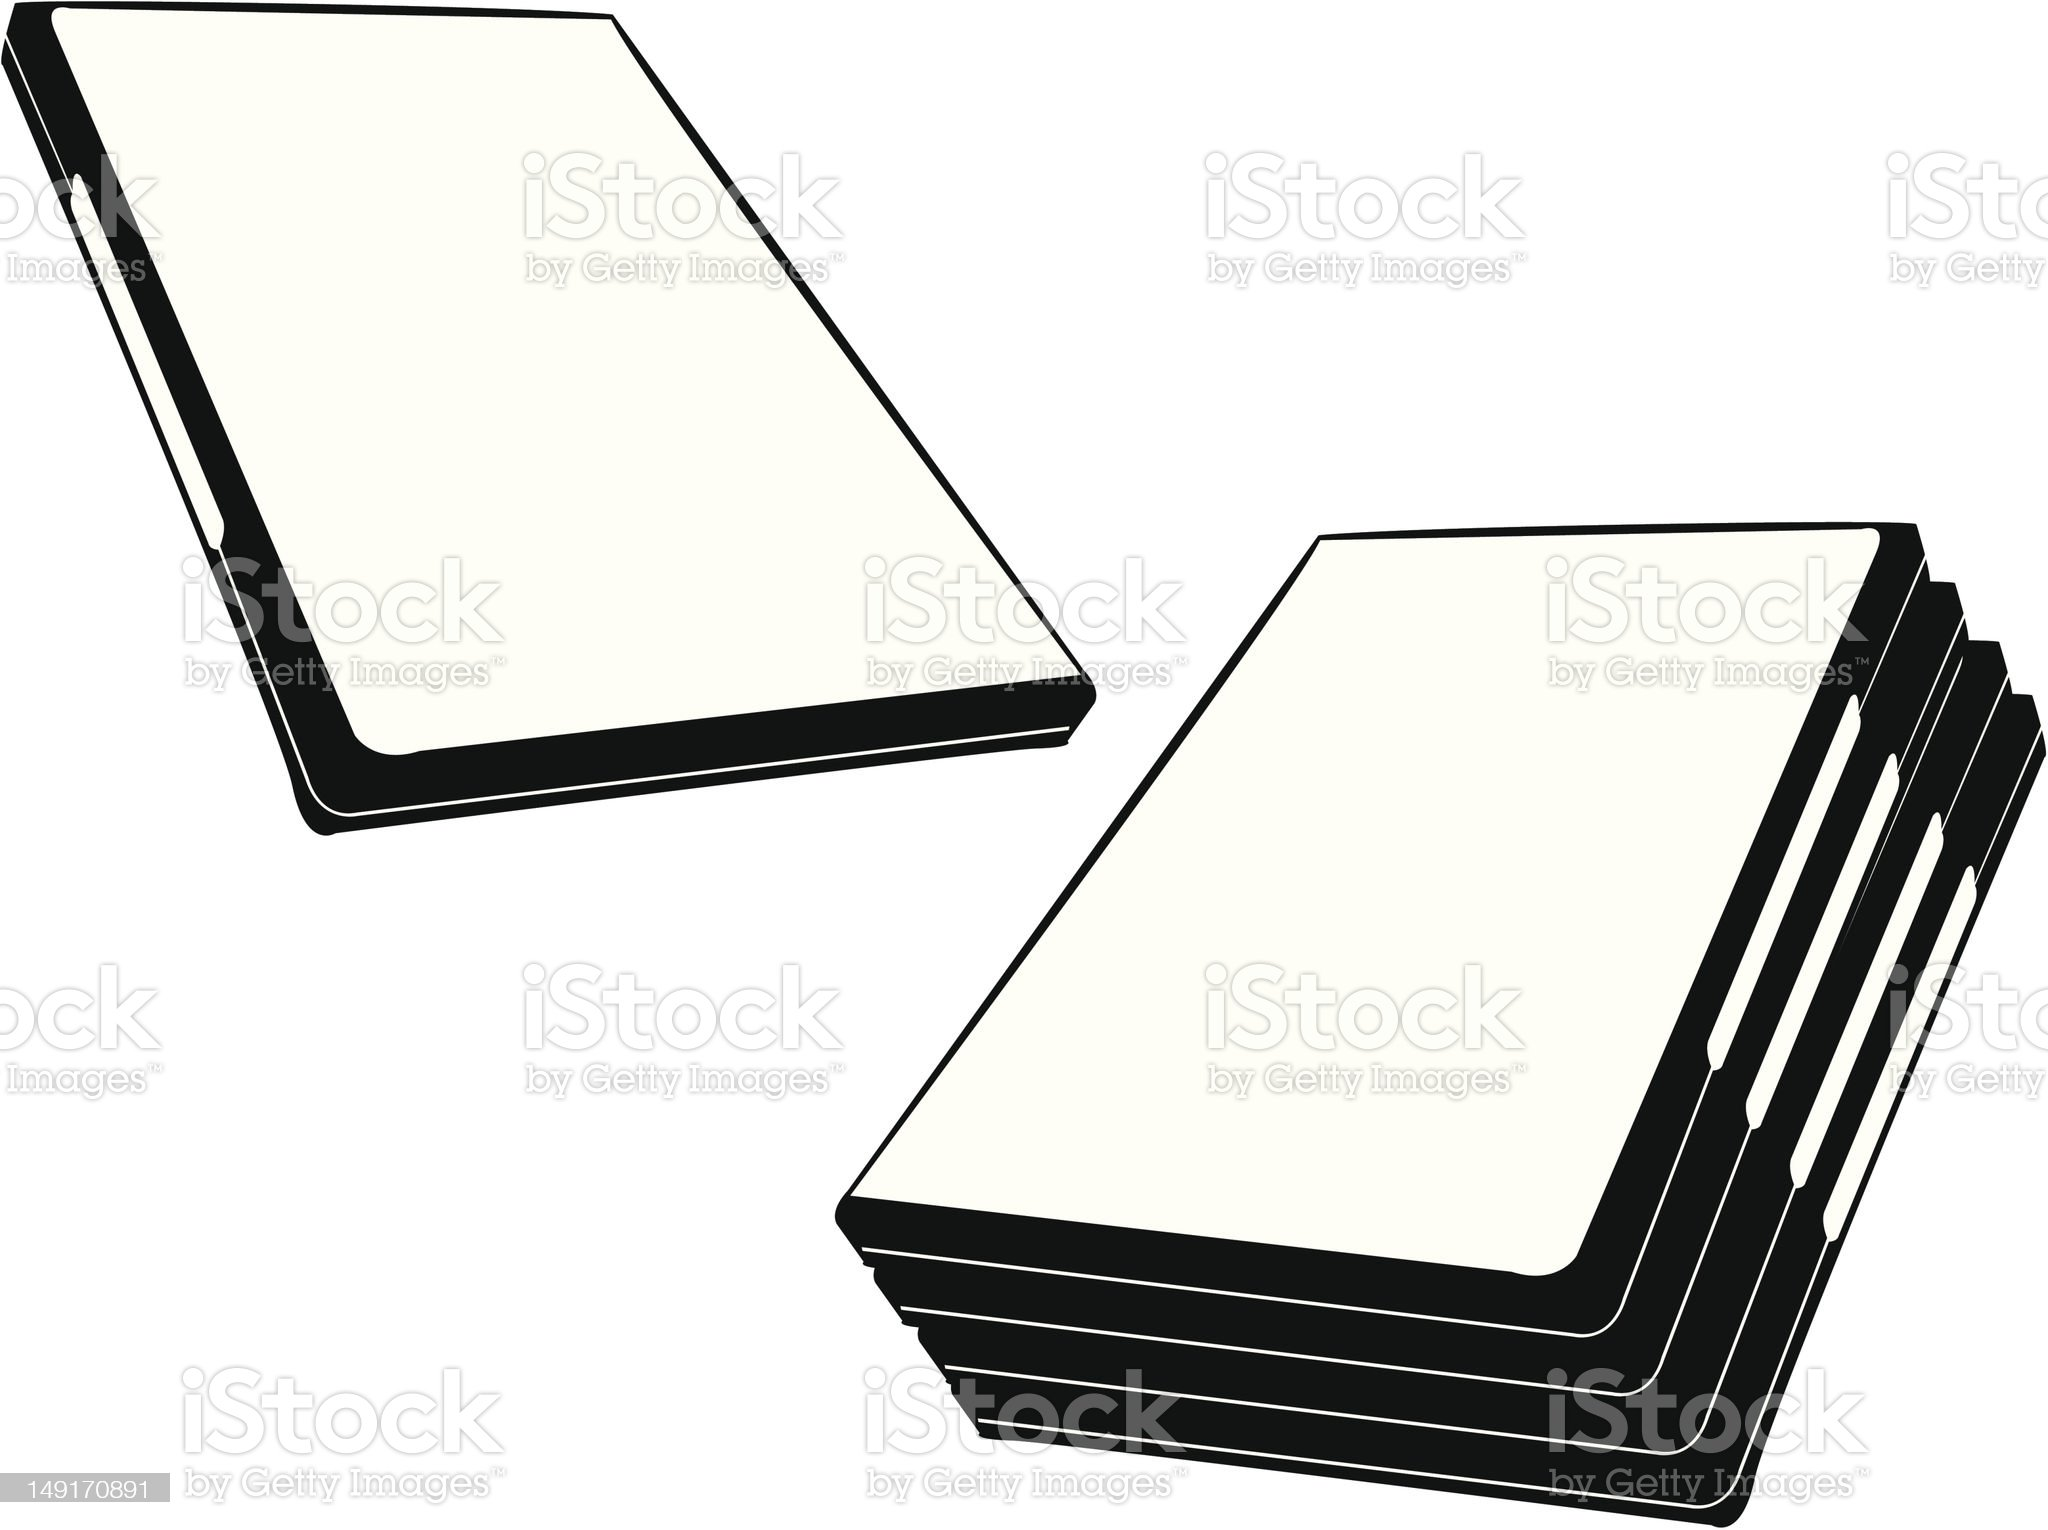 DVD Cases royalty-free stock photo